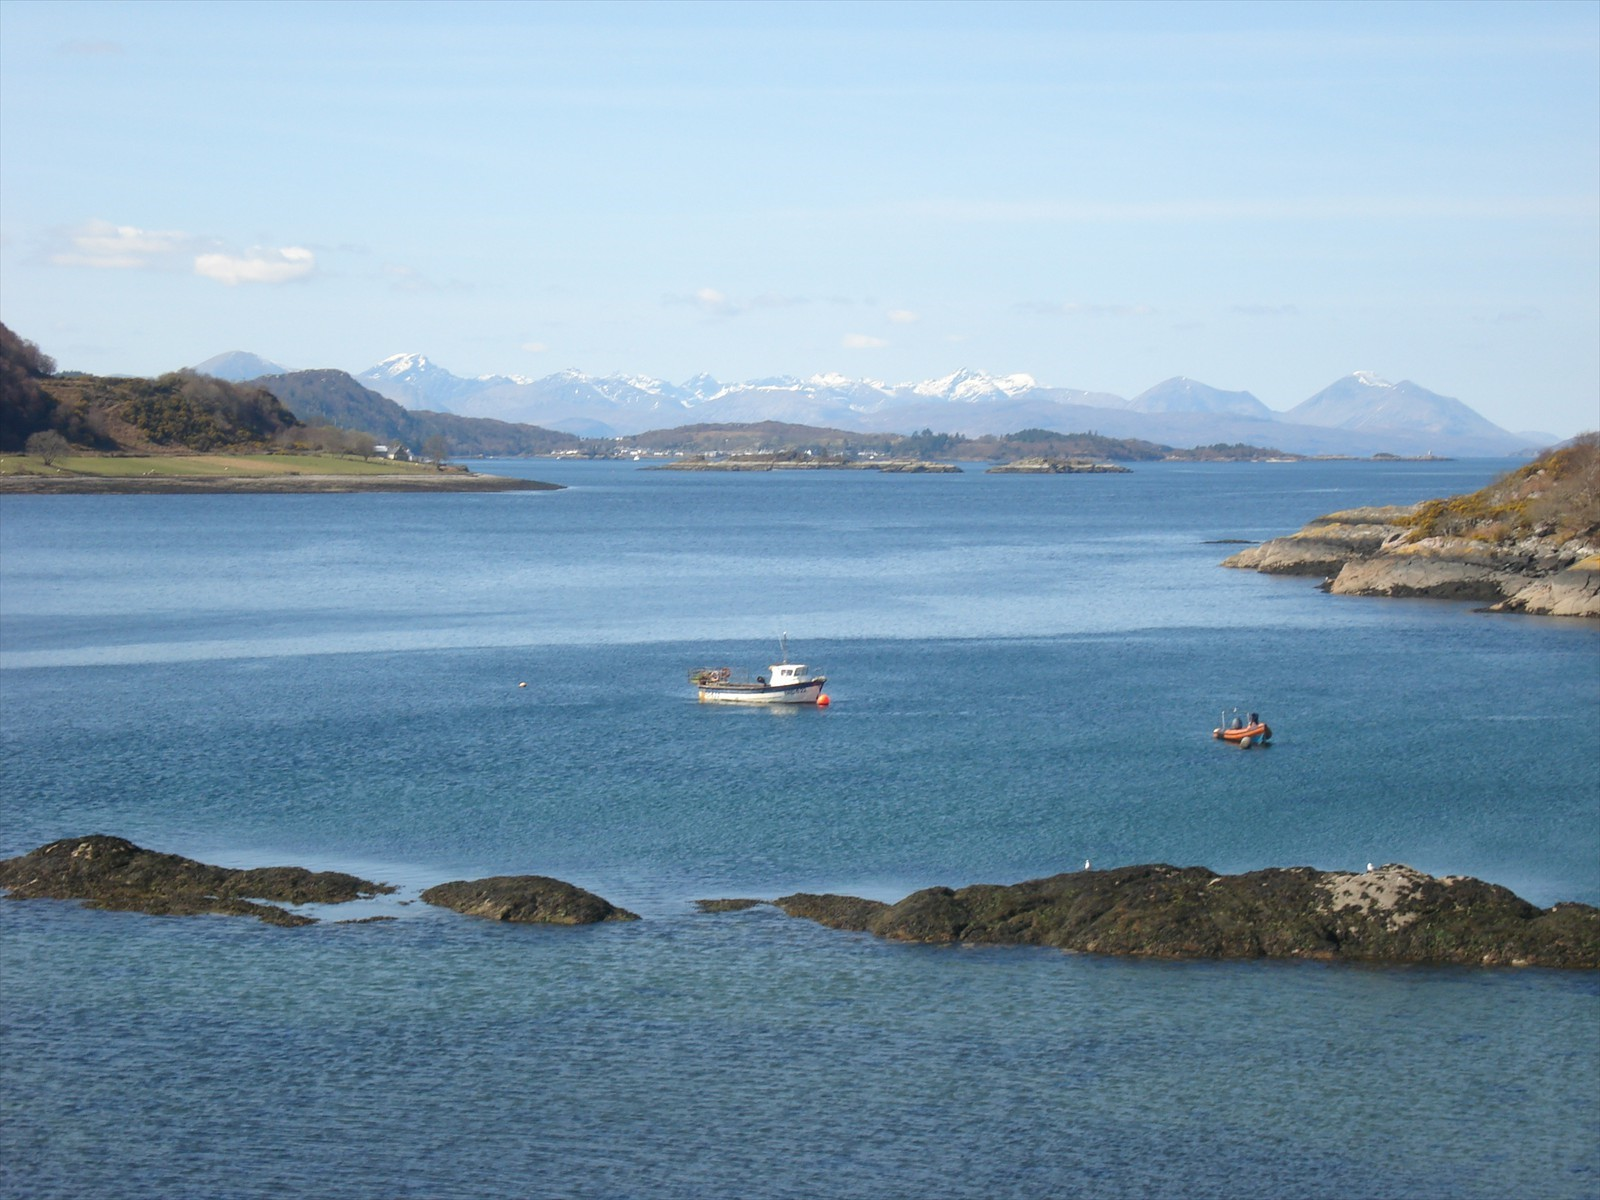 loch carron looking over to skye and plockton from strome